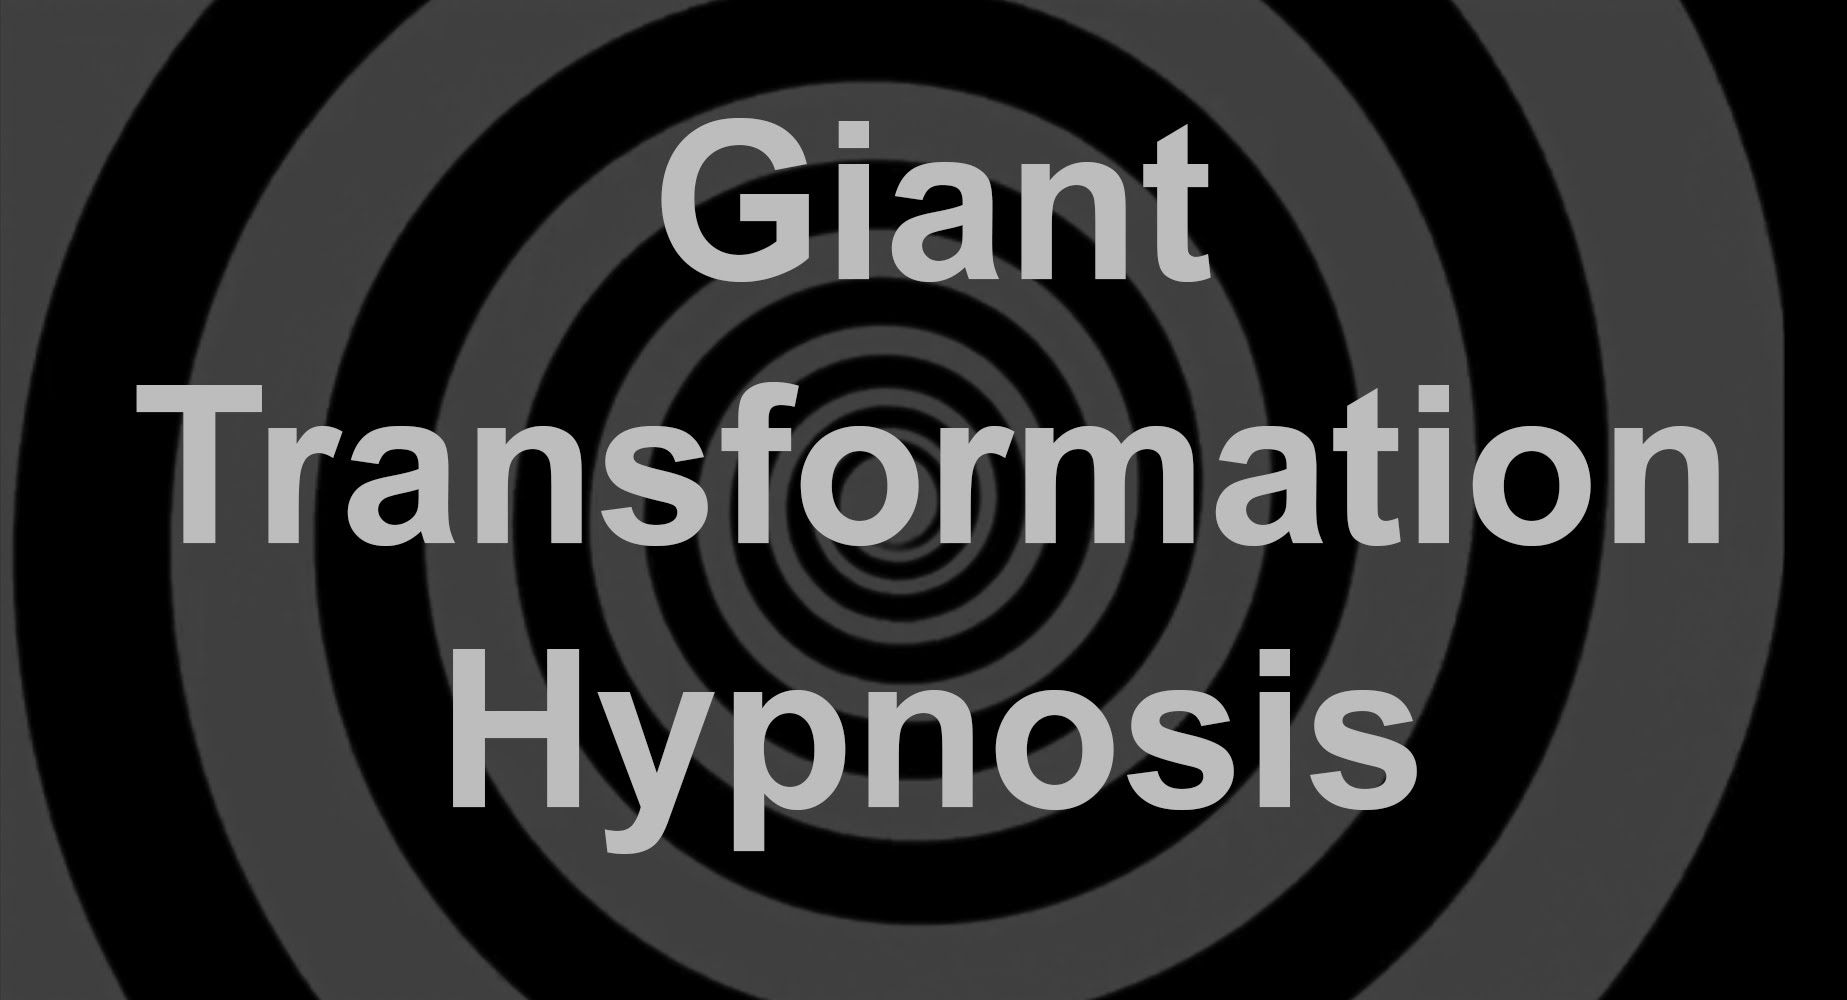 Giant Transformation Hypnosis Hypnosis, How to remove, Fear